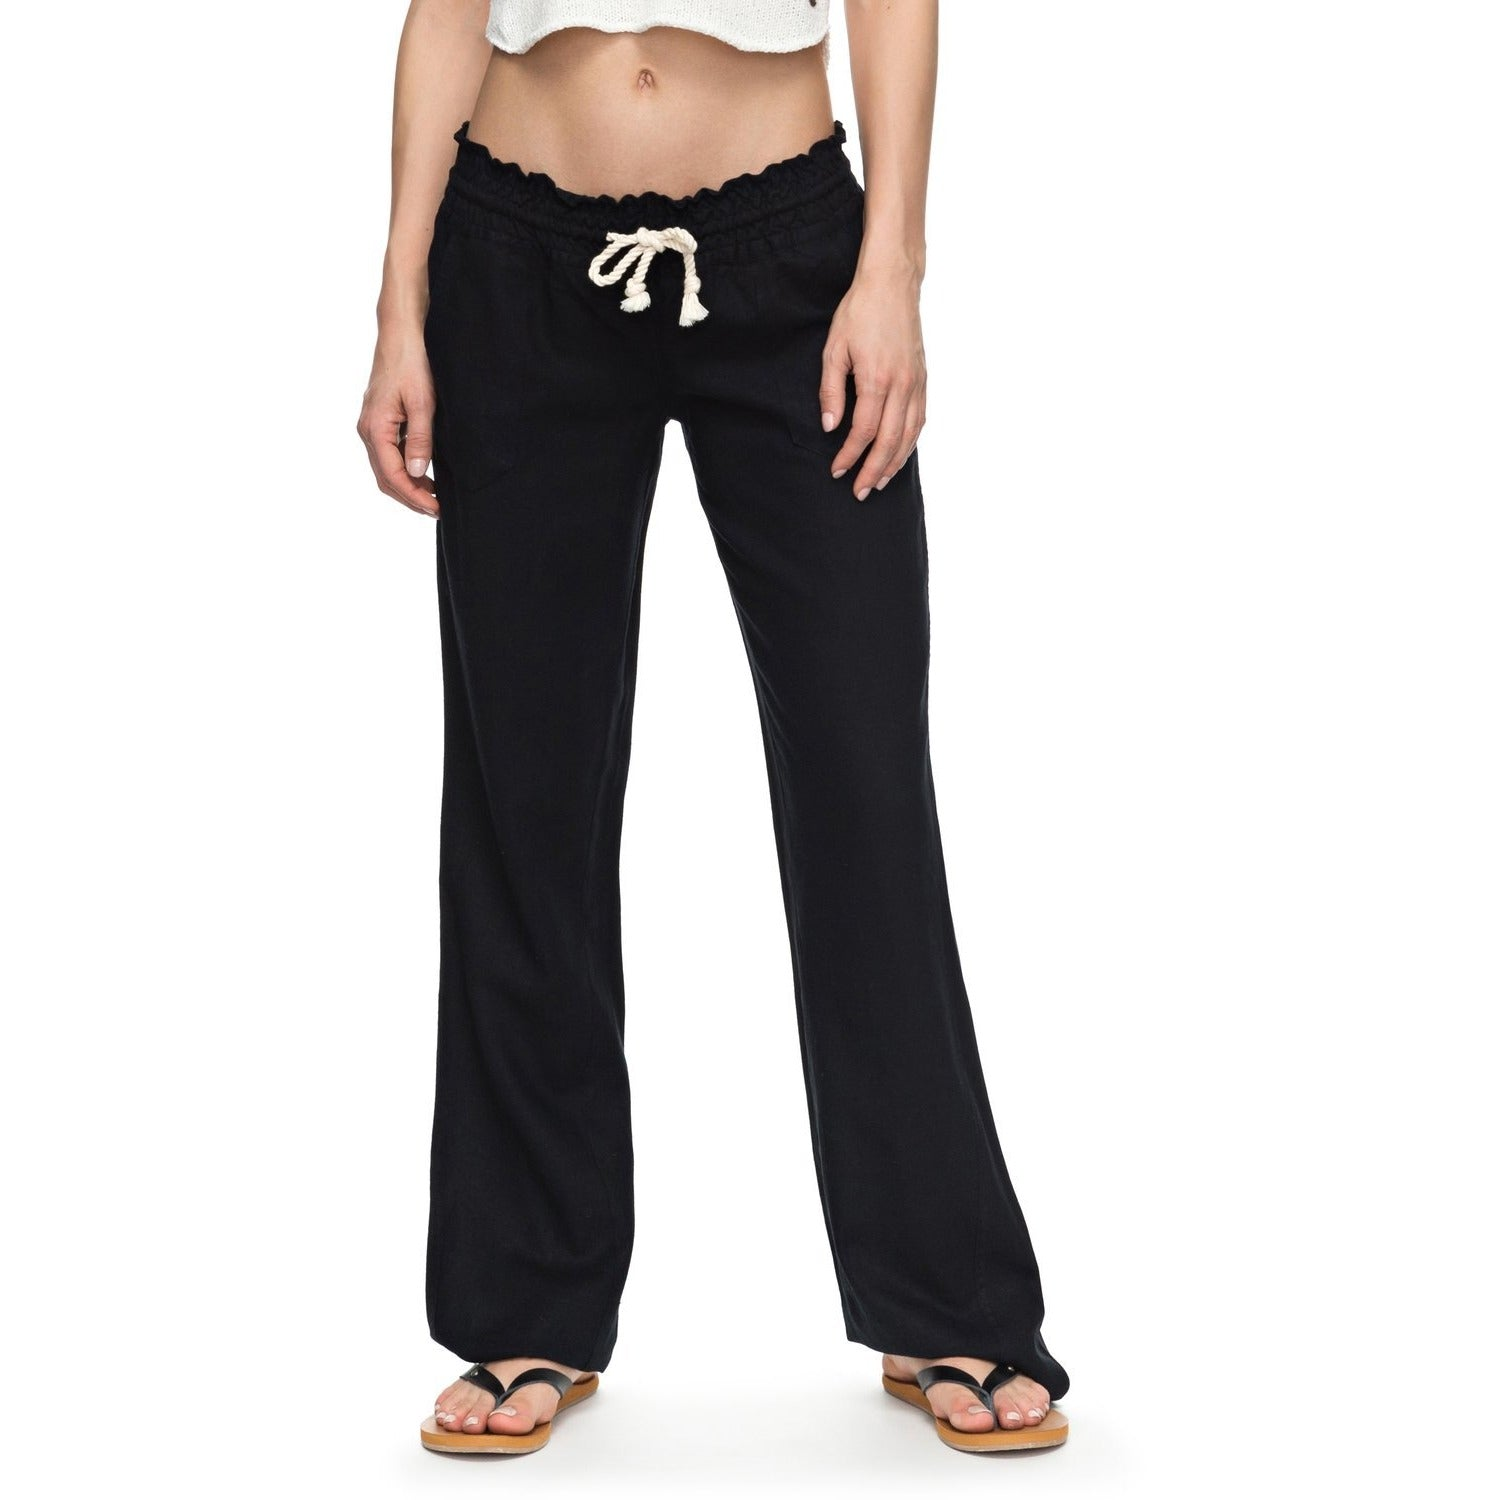 Roxy Oceanside Beach Pants - 88 Gear